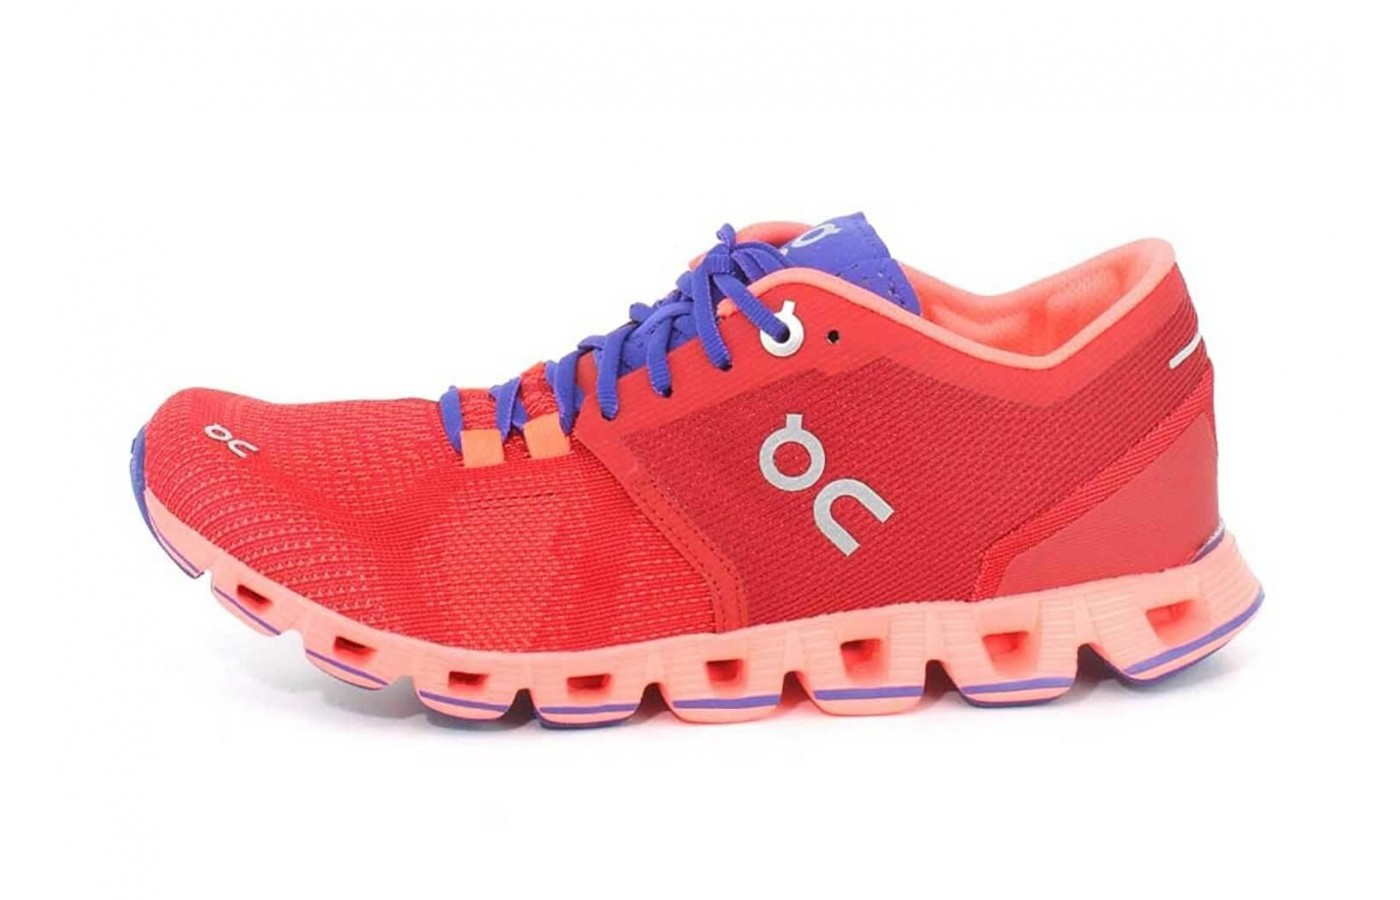 The On Cloud X features a midsole with Zero Gravity foam